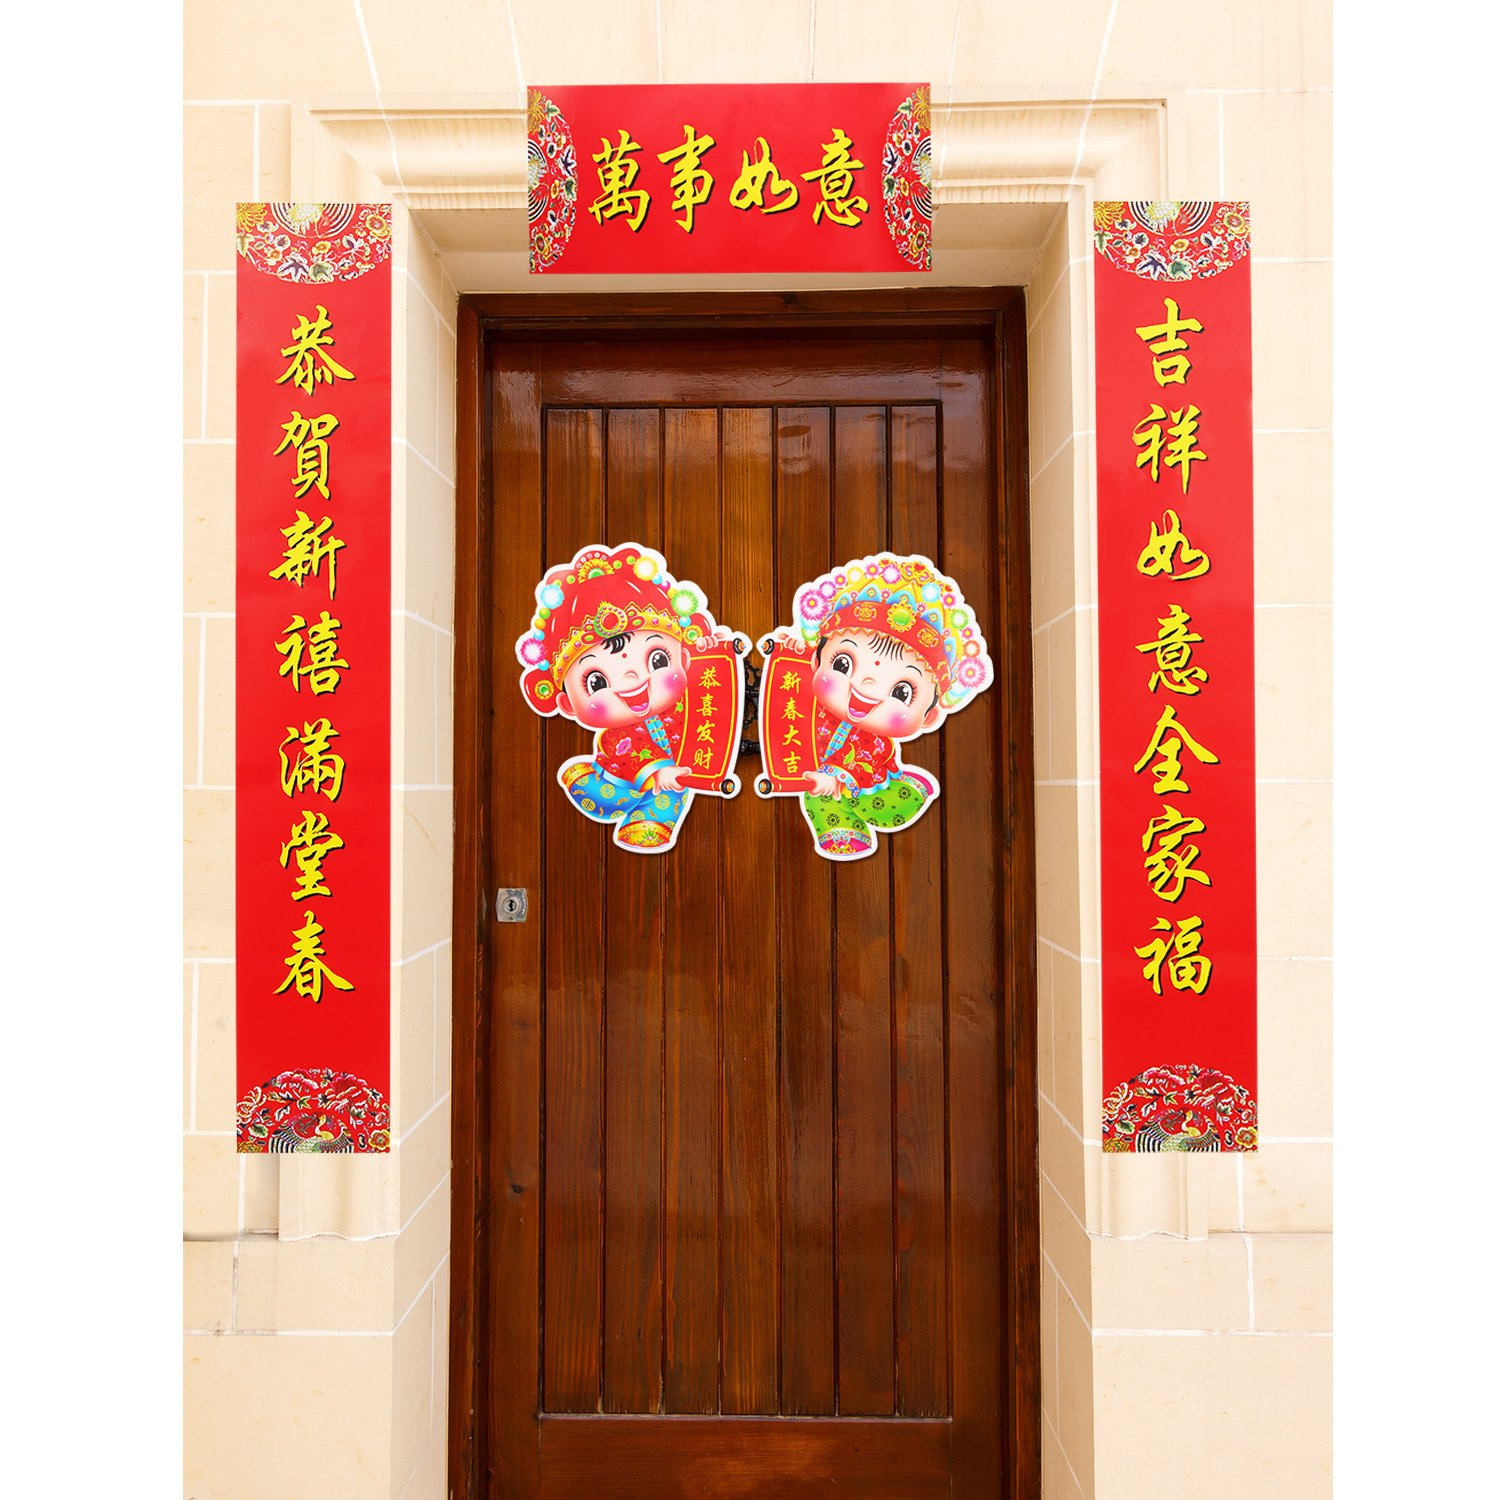 Mtlee Chinese Couplet Decorative Gift Kit for 2019 Chinese New Year Spring Festival, Includes Chun Lian, Fu Characters, Chinese Fu Stickers, Door Stickers, Red Envelopes, FU Bag (Set of 27 Pieces) by Mtlee (Image #3)